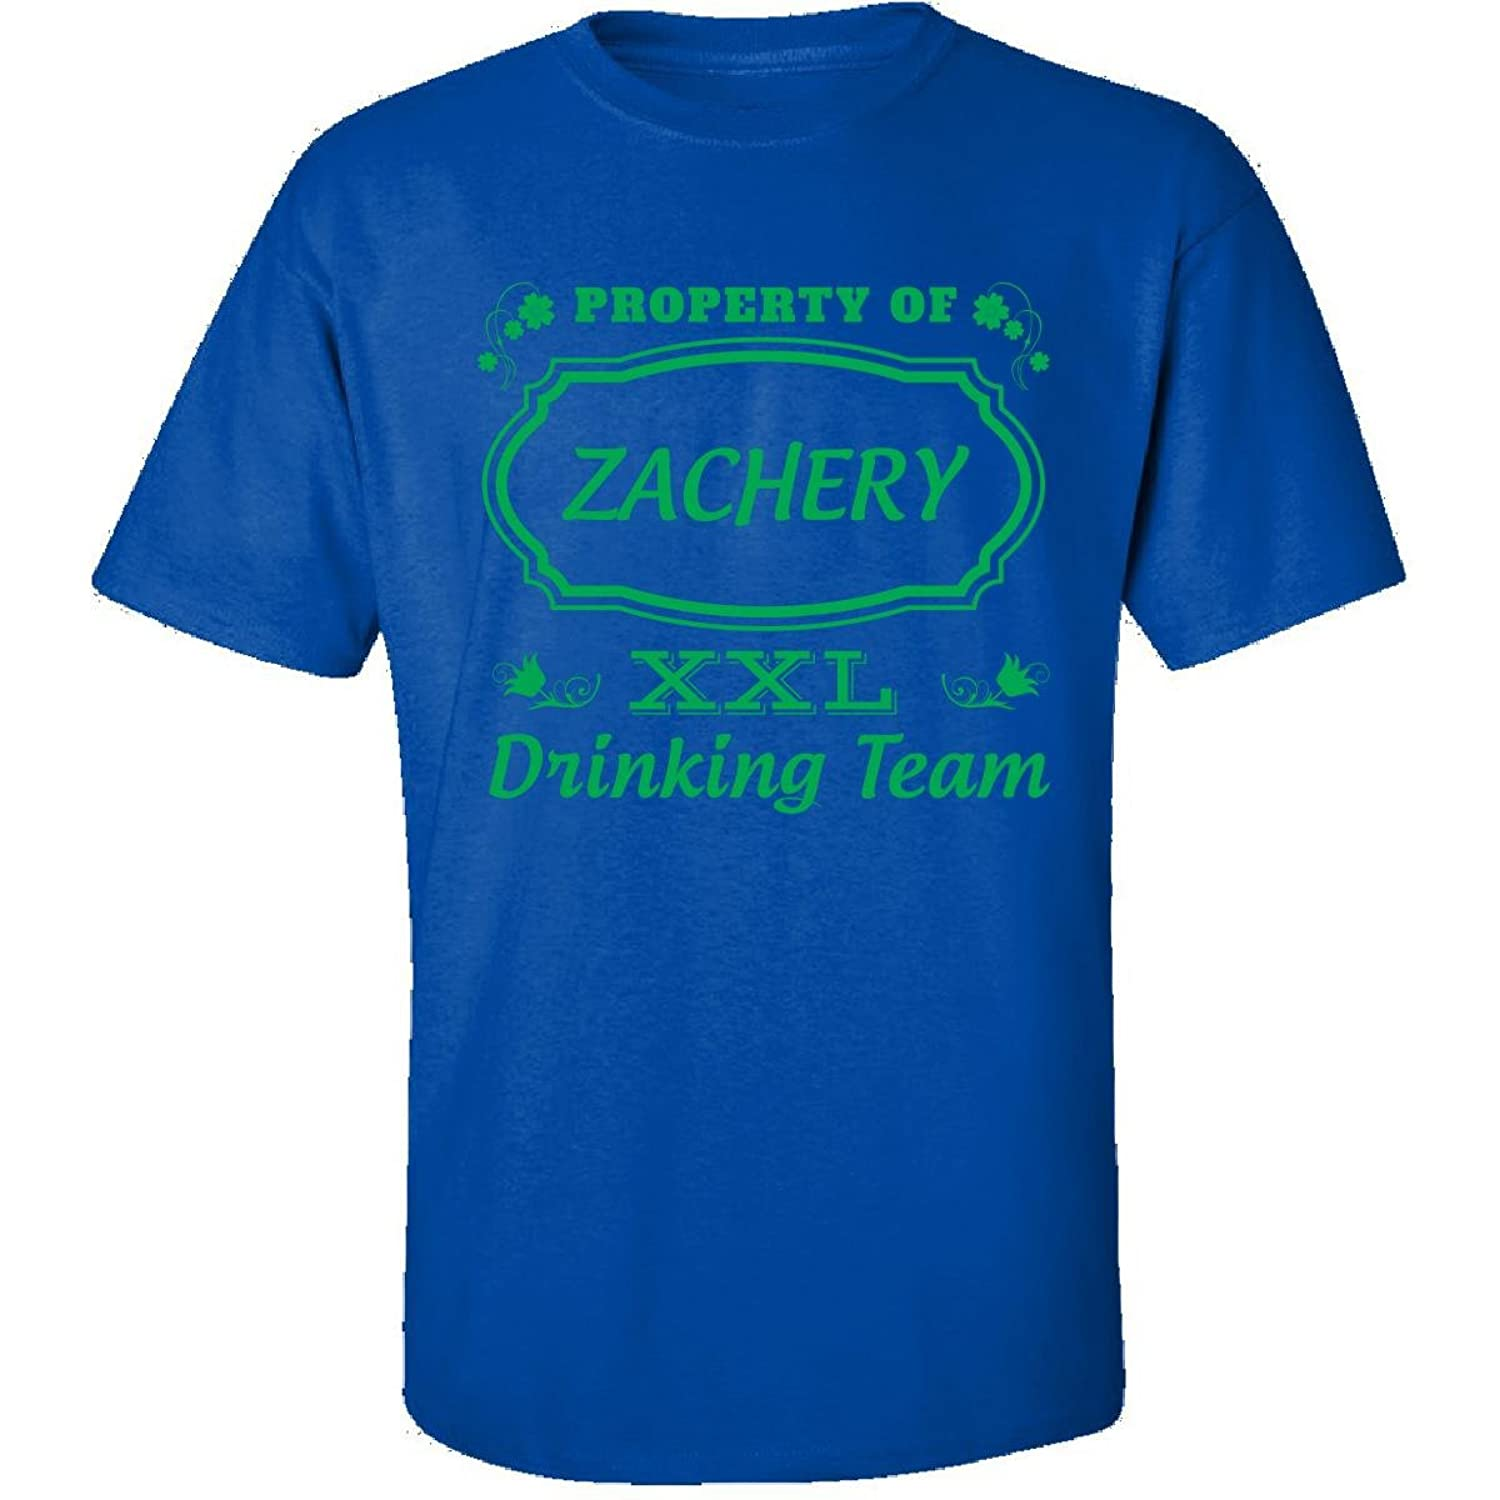 Property Of Zachery St Patrick Day Beer Drinking Team - Adult Shirt